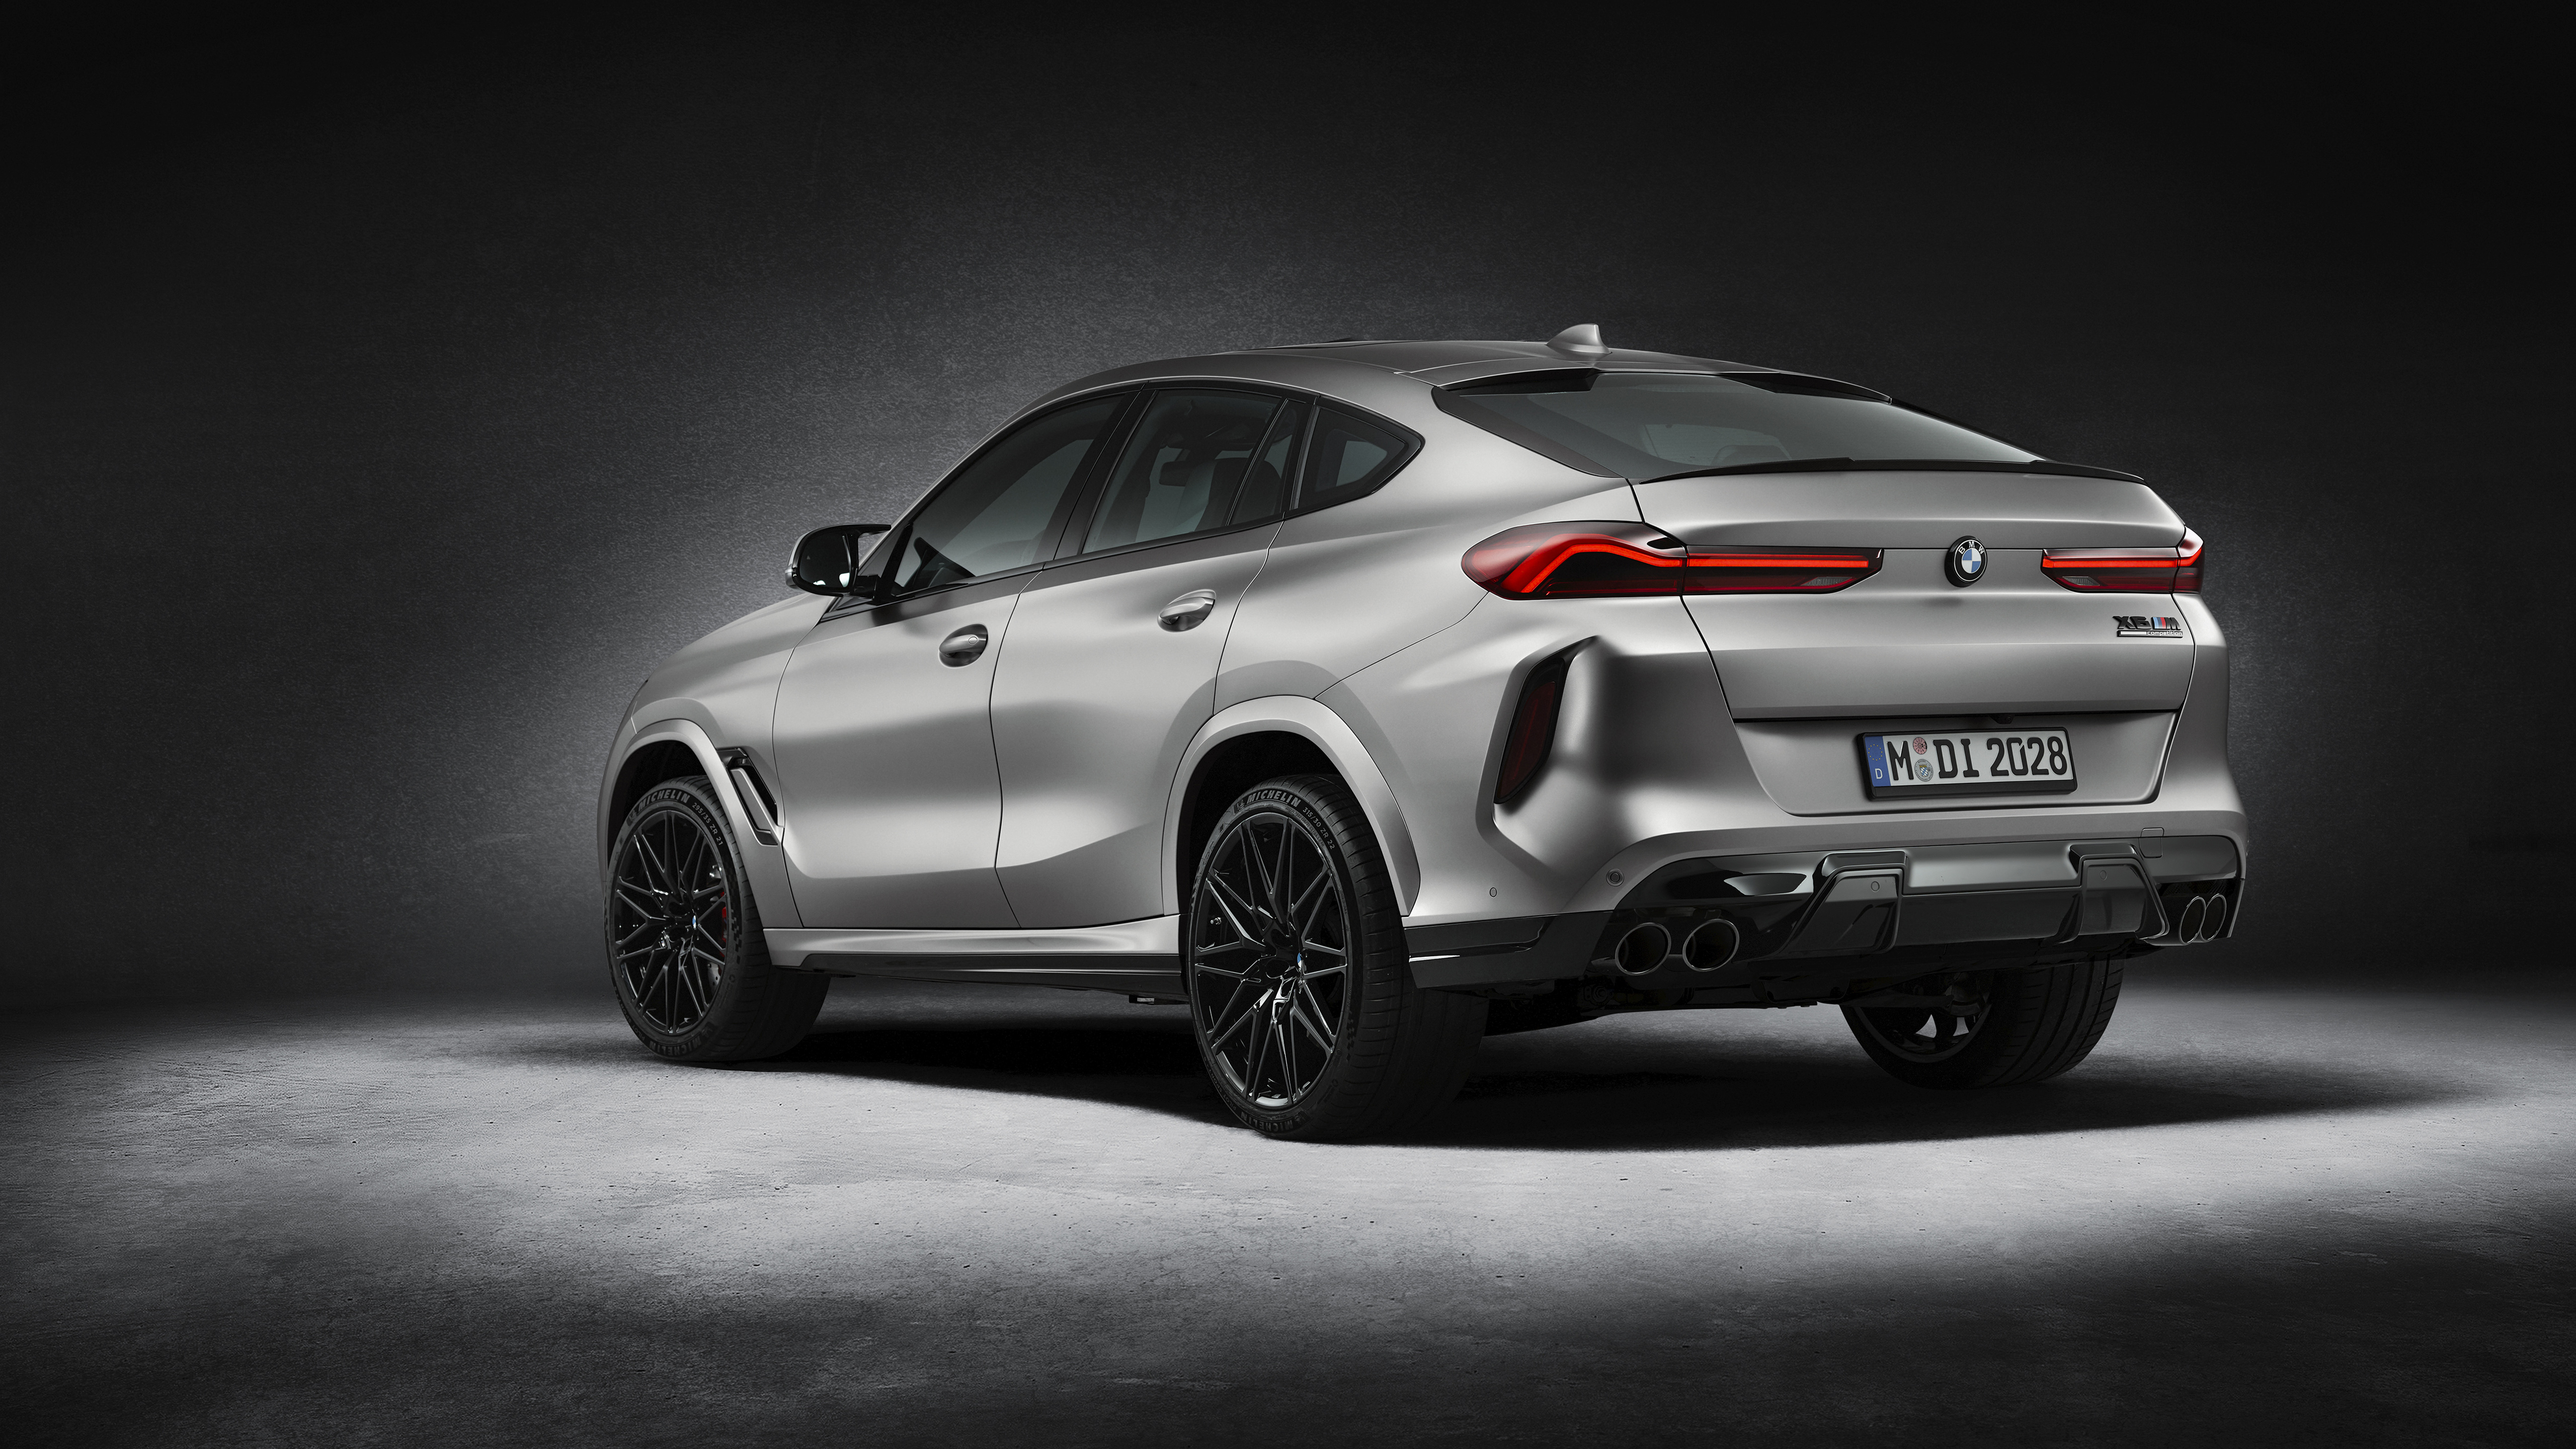 Bmw X6 M Competition First Edition 2021 5k 2 Wallpaper Hd Car Wallpapers Id 16255